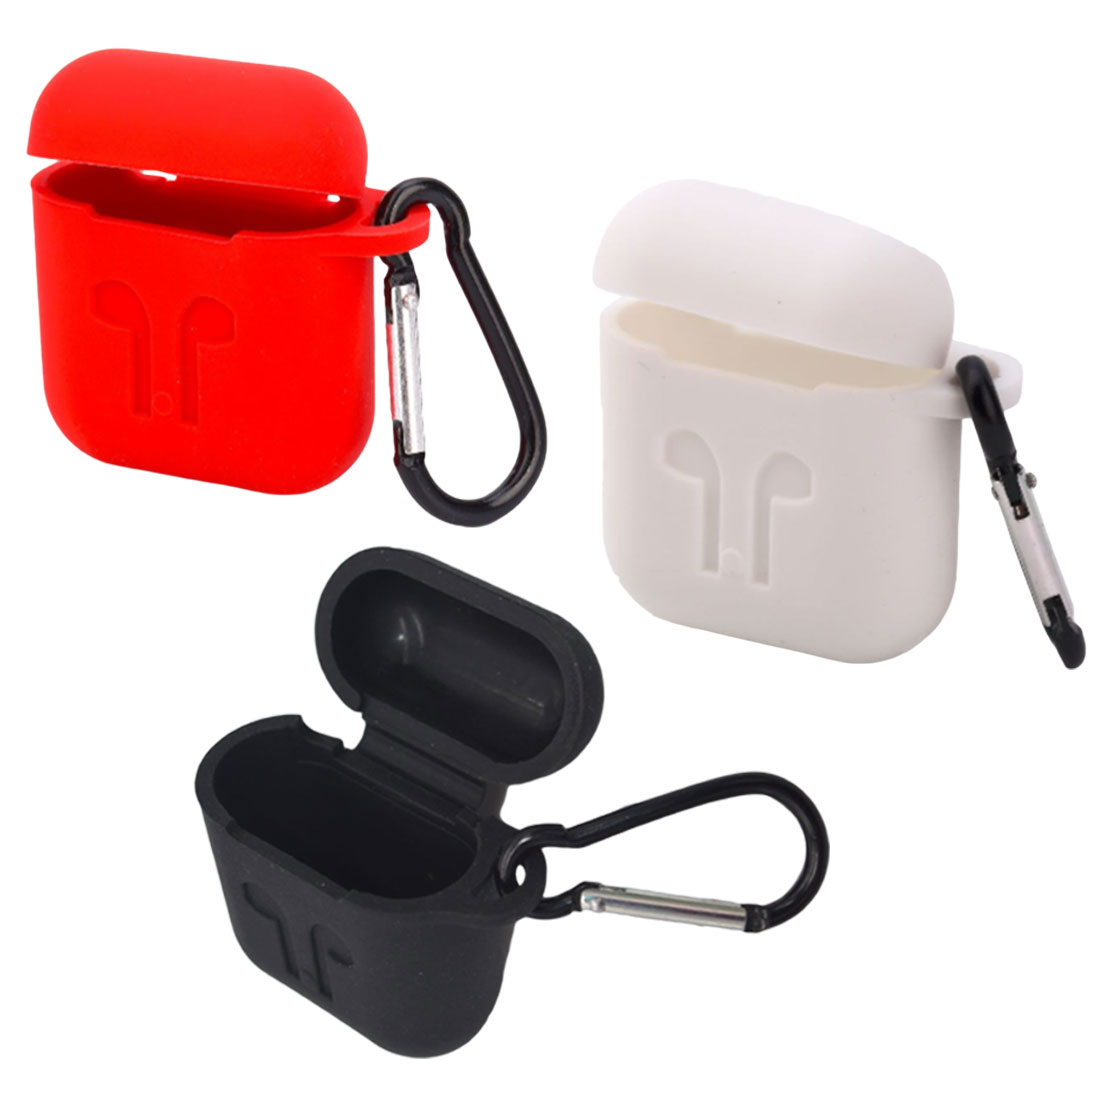 Soft Silicone Cover For Apple Airpods Waterproof Shockproof Protector Case Sleeve Pouch For Air Pods Earphone With Hook